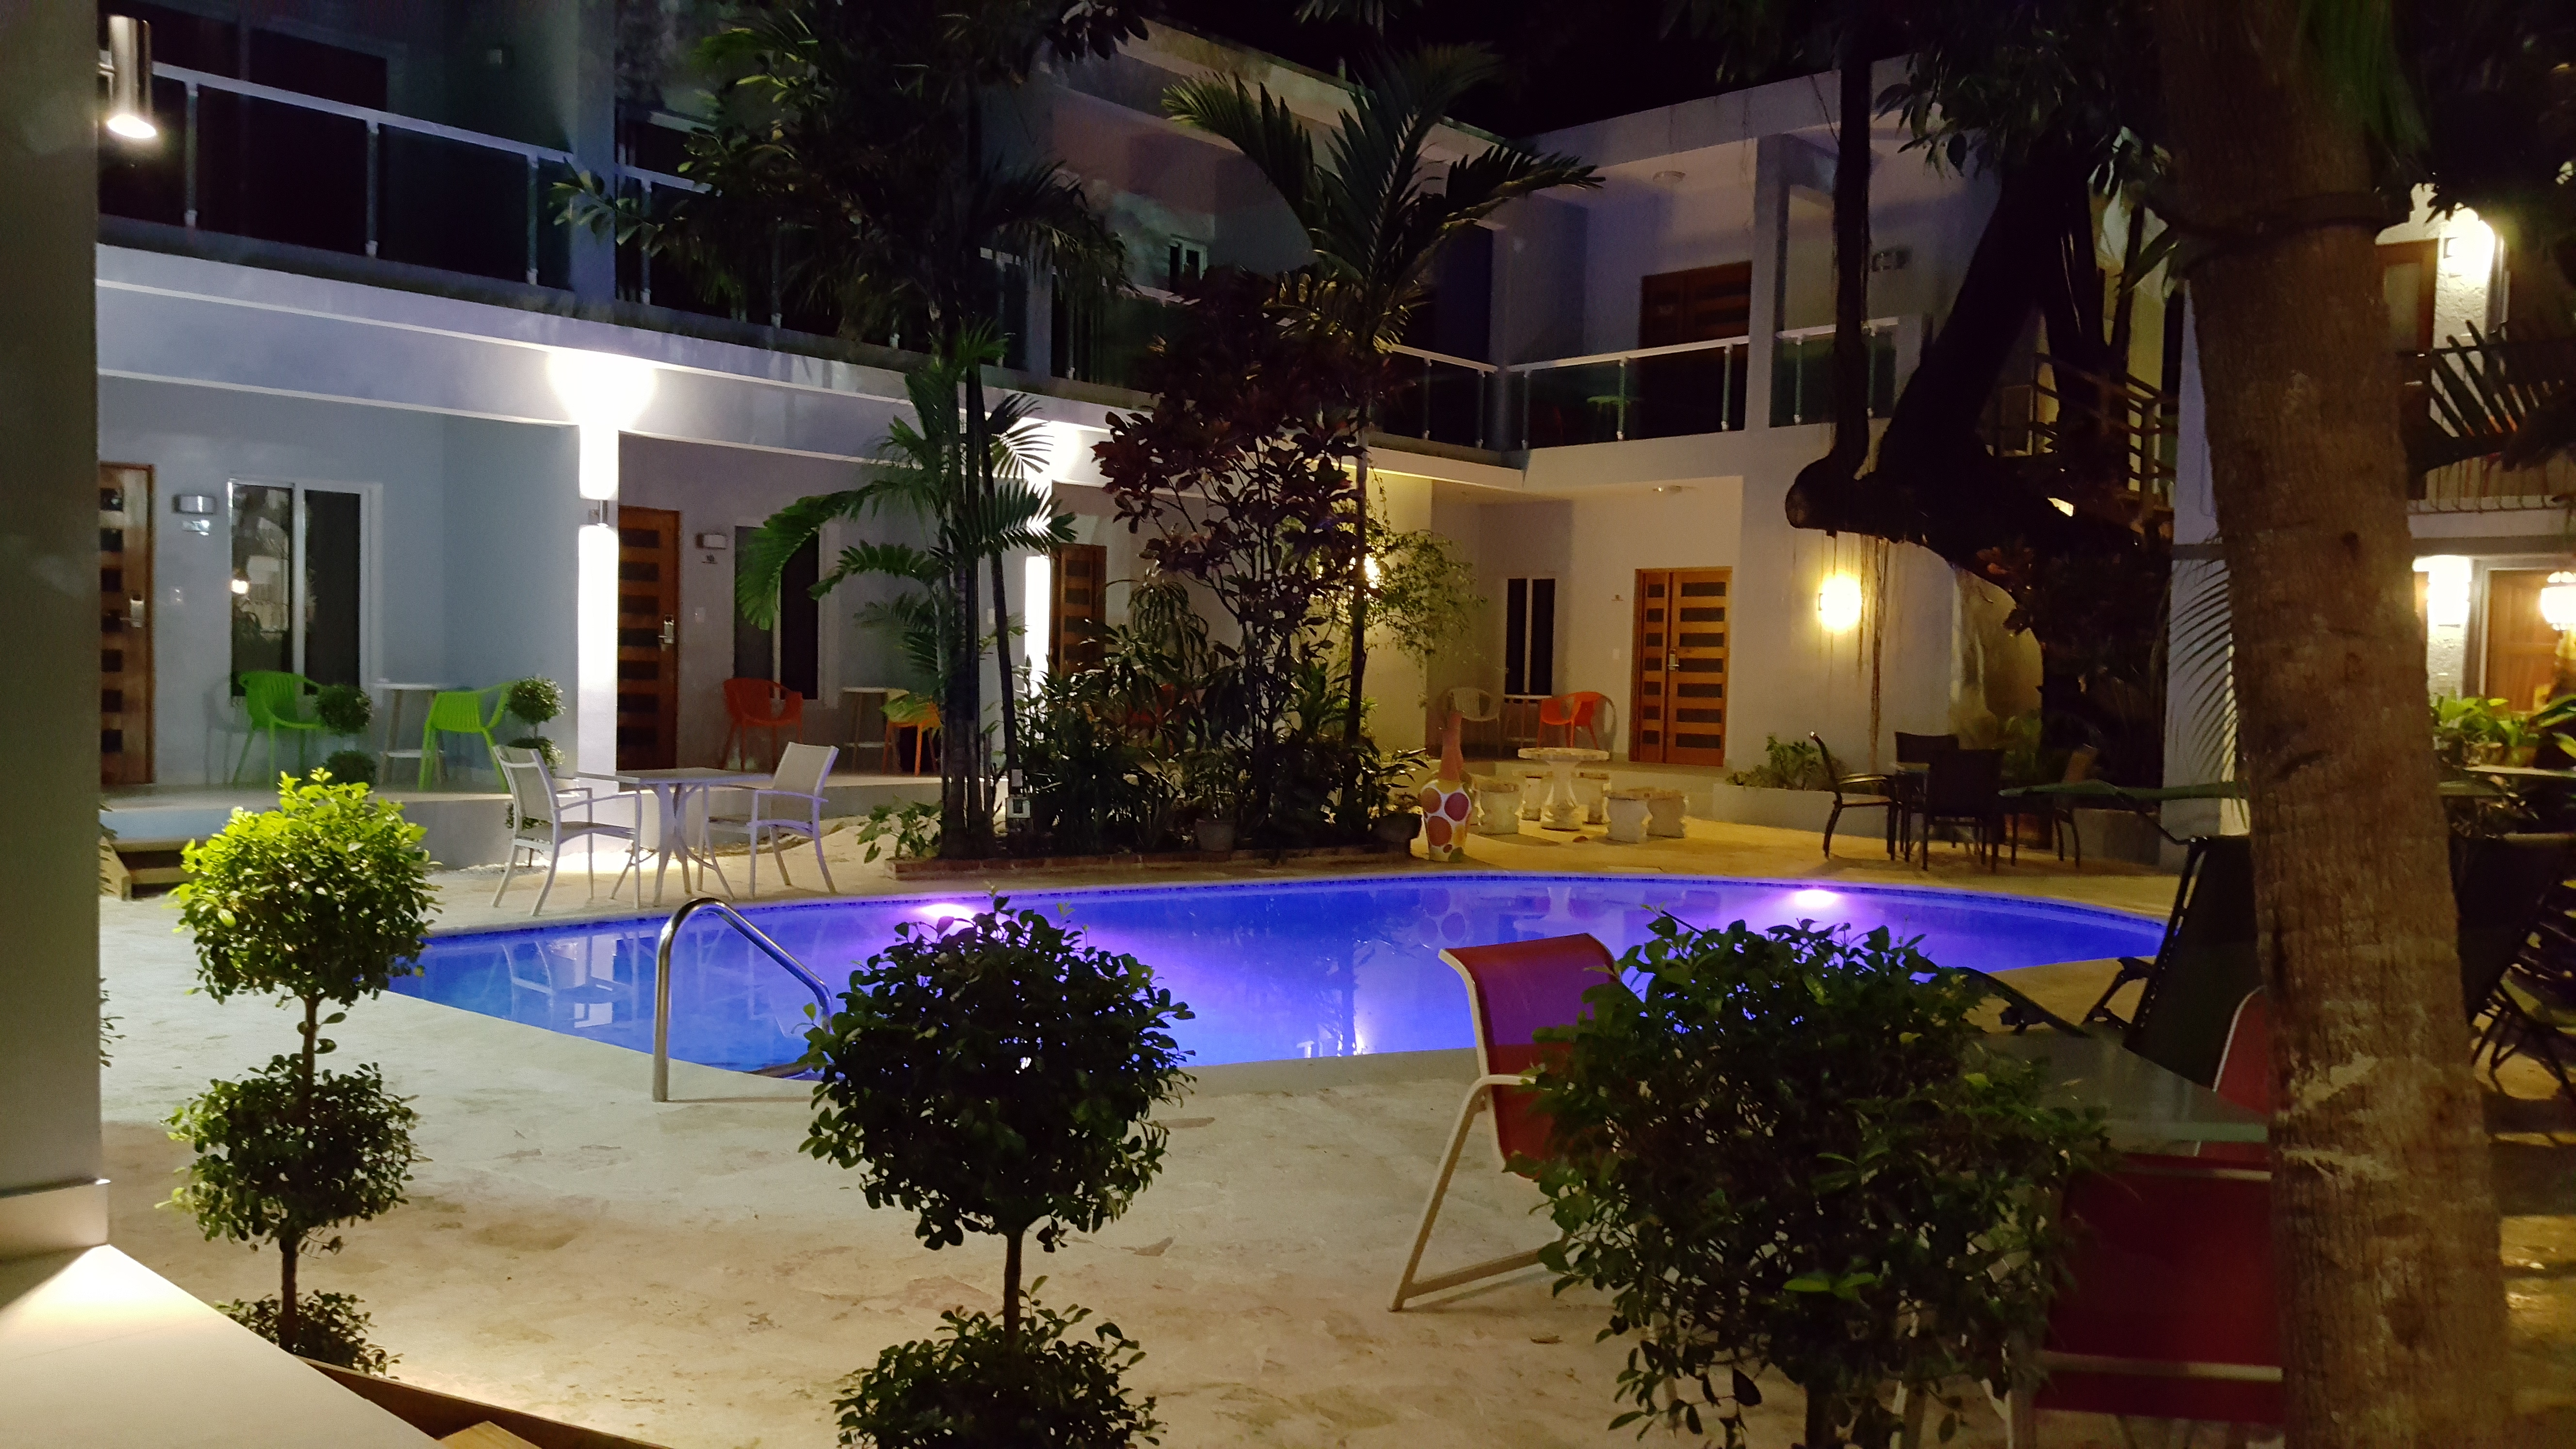 Poolsite @ night